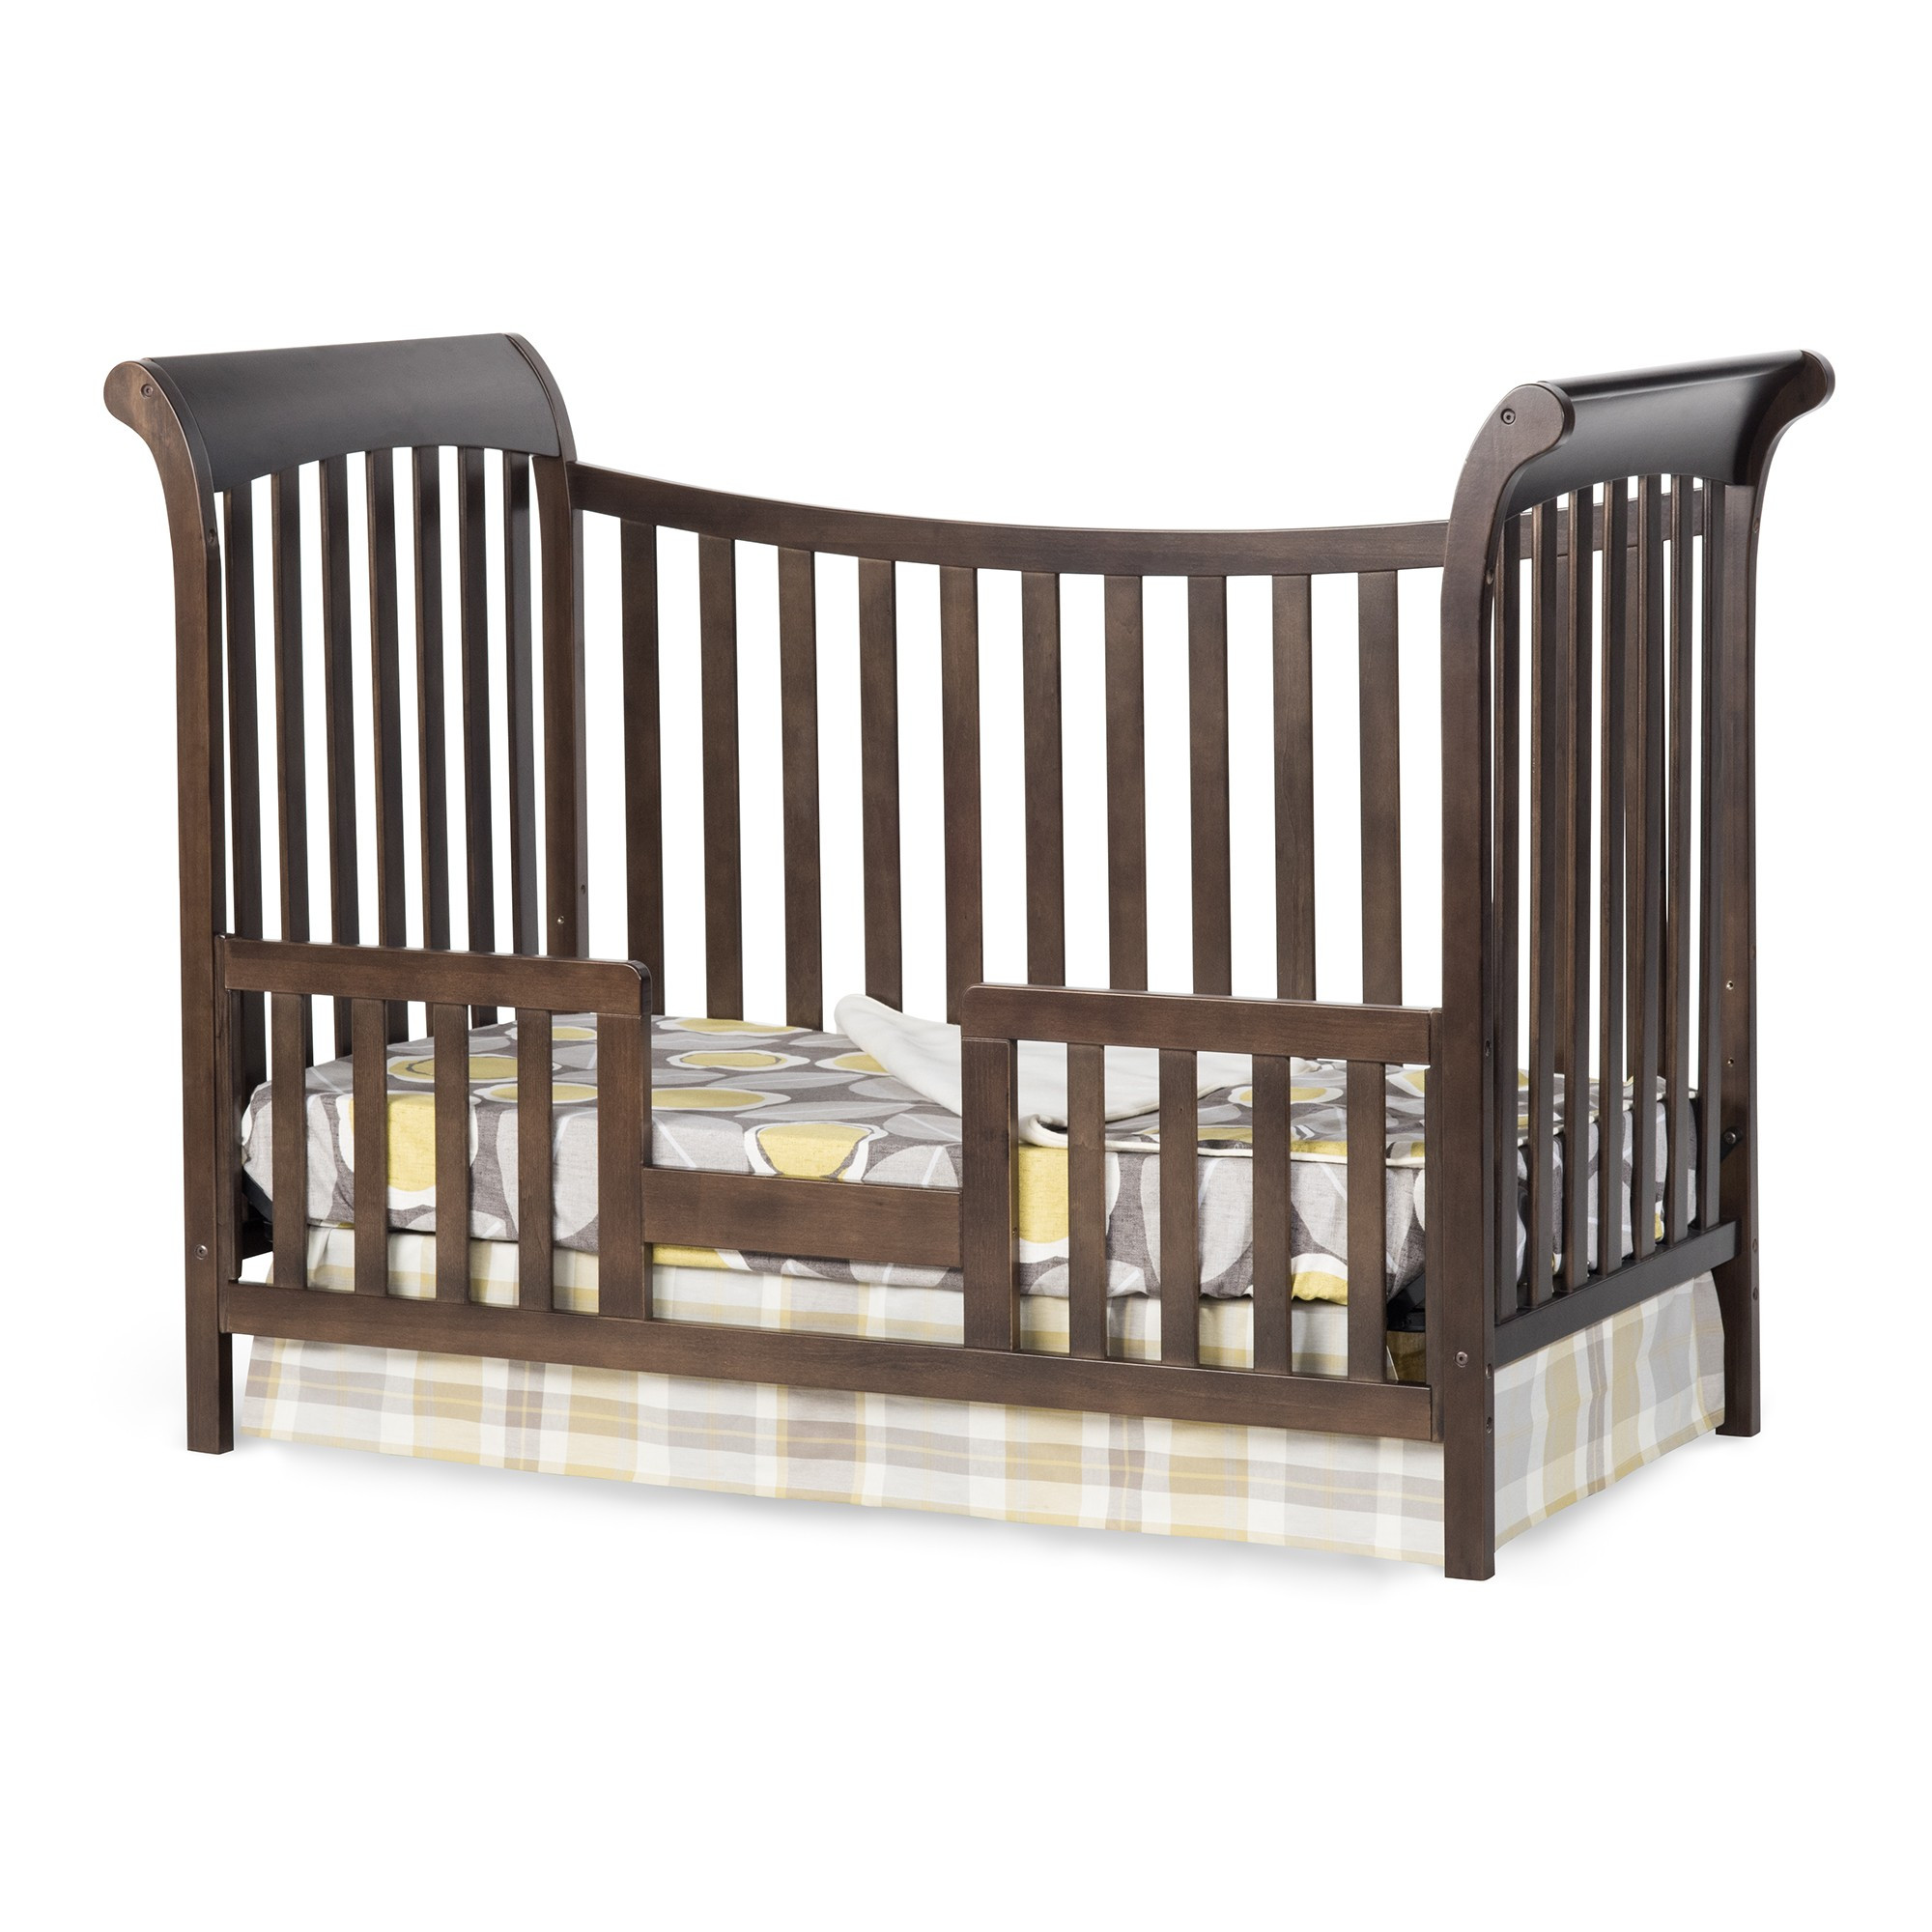 Child Craft Coventry Crib  Coventry 3 in 1 Traditional Crib